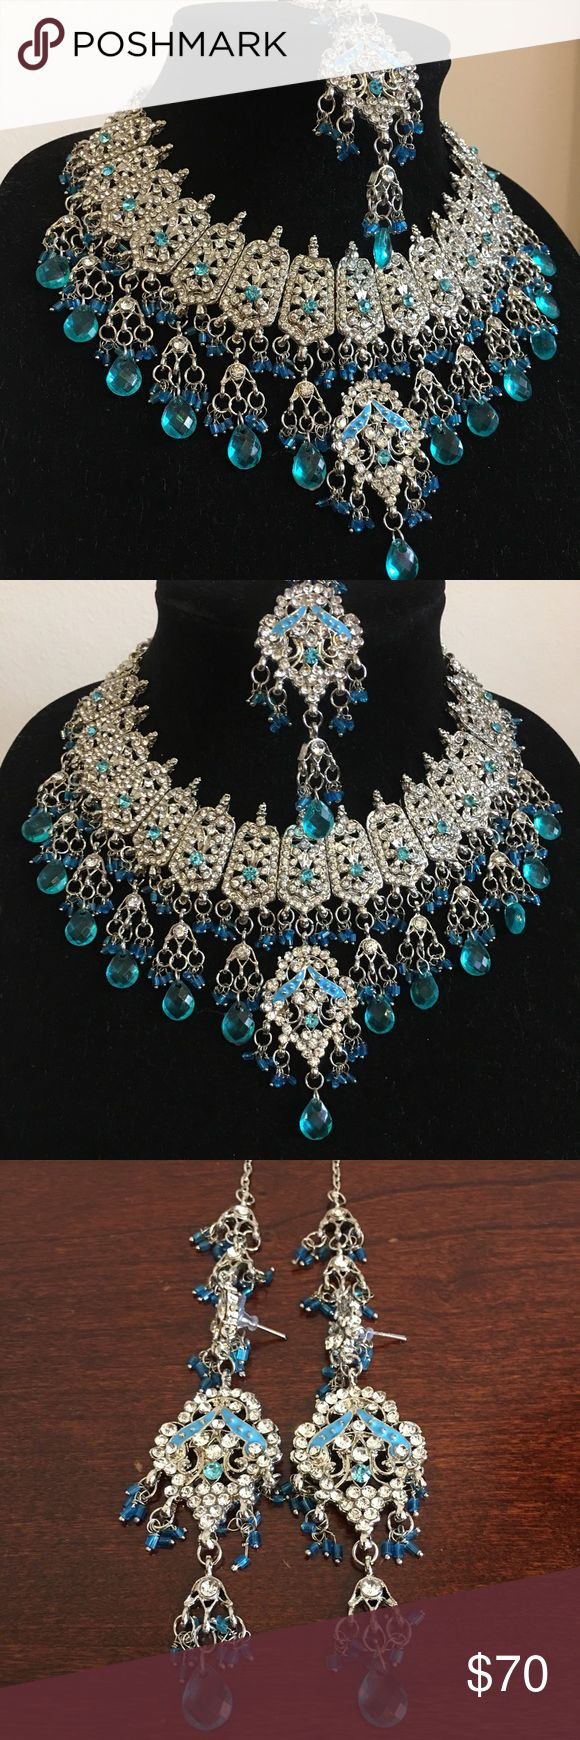 Indian/Pakistani Jewelry Brand New Bollywood Inspired Jewelry Set-  Necklace, earrings, and a head piece (tikka)   #fashion #indian #pakistani #bollywood #jewelry #necklace #earrings Jewelry Earrings